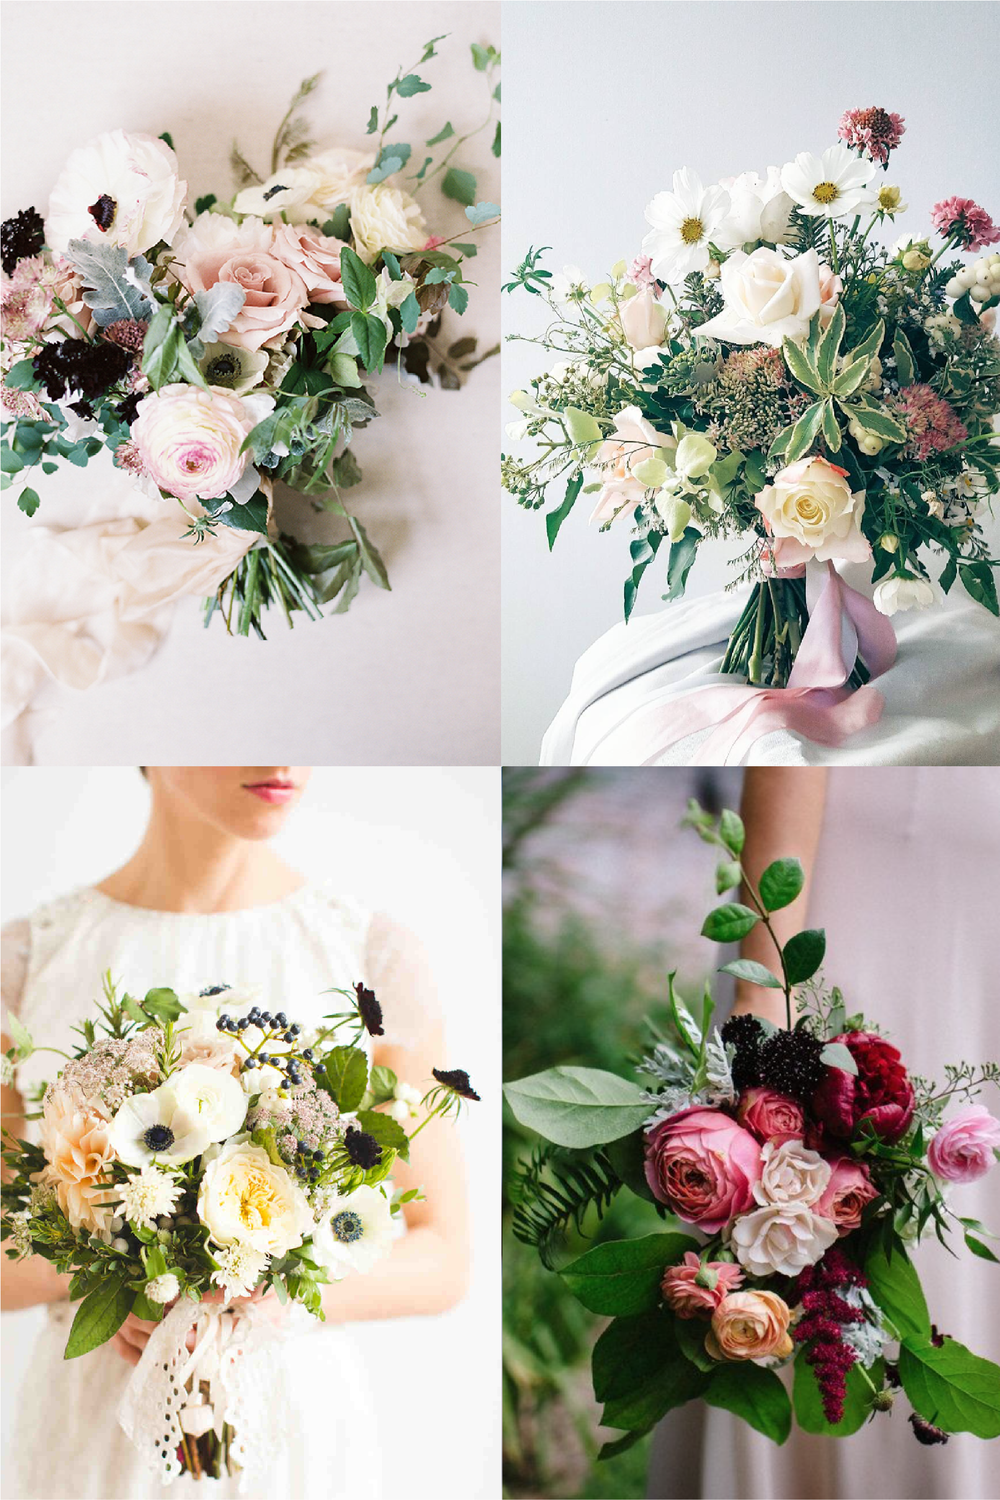 FROM CLOCKWISE, FROM TOP LEFT: FLOWERS BY NEW CREATIONS FLOWER CO. PHOTO BY ALLISON KUHN PHOTOGRAPHY ;  FLOWERS BY LIME TREE BOWER; FLOWERS BY VELVET AND TWINE ; FLOWERS BY  BLOMMA FLORAL AND DESIGN AND PHOTO BY REBECCA WOOD.